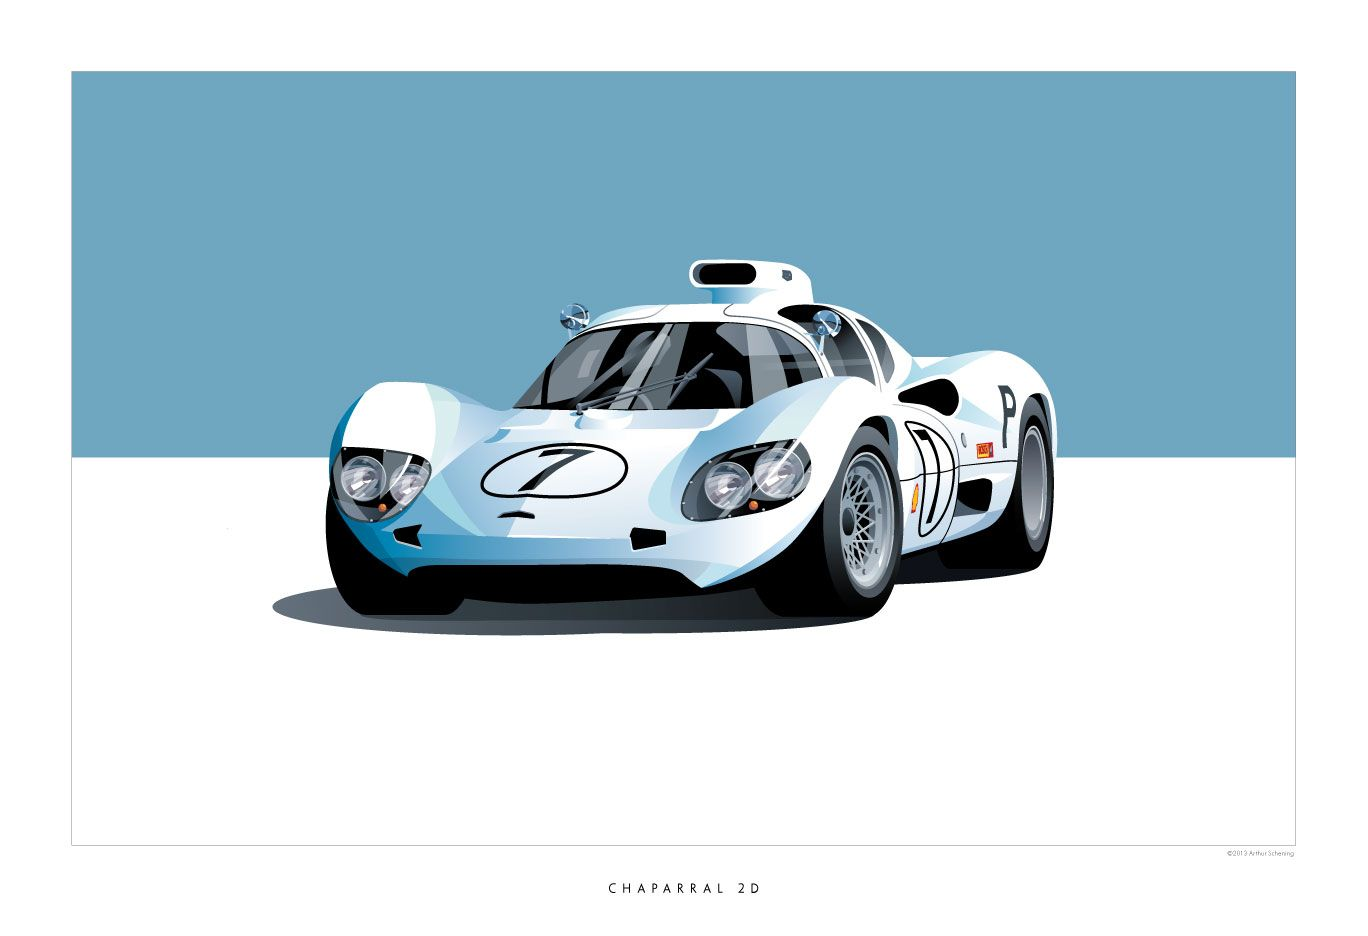 Historic Racing Cars By Scheningcreative Race Cars Vintage Race Car Car Prints